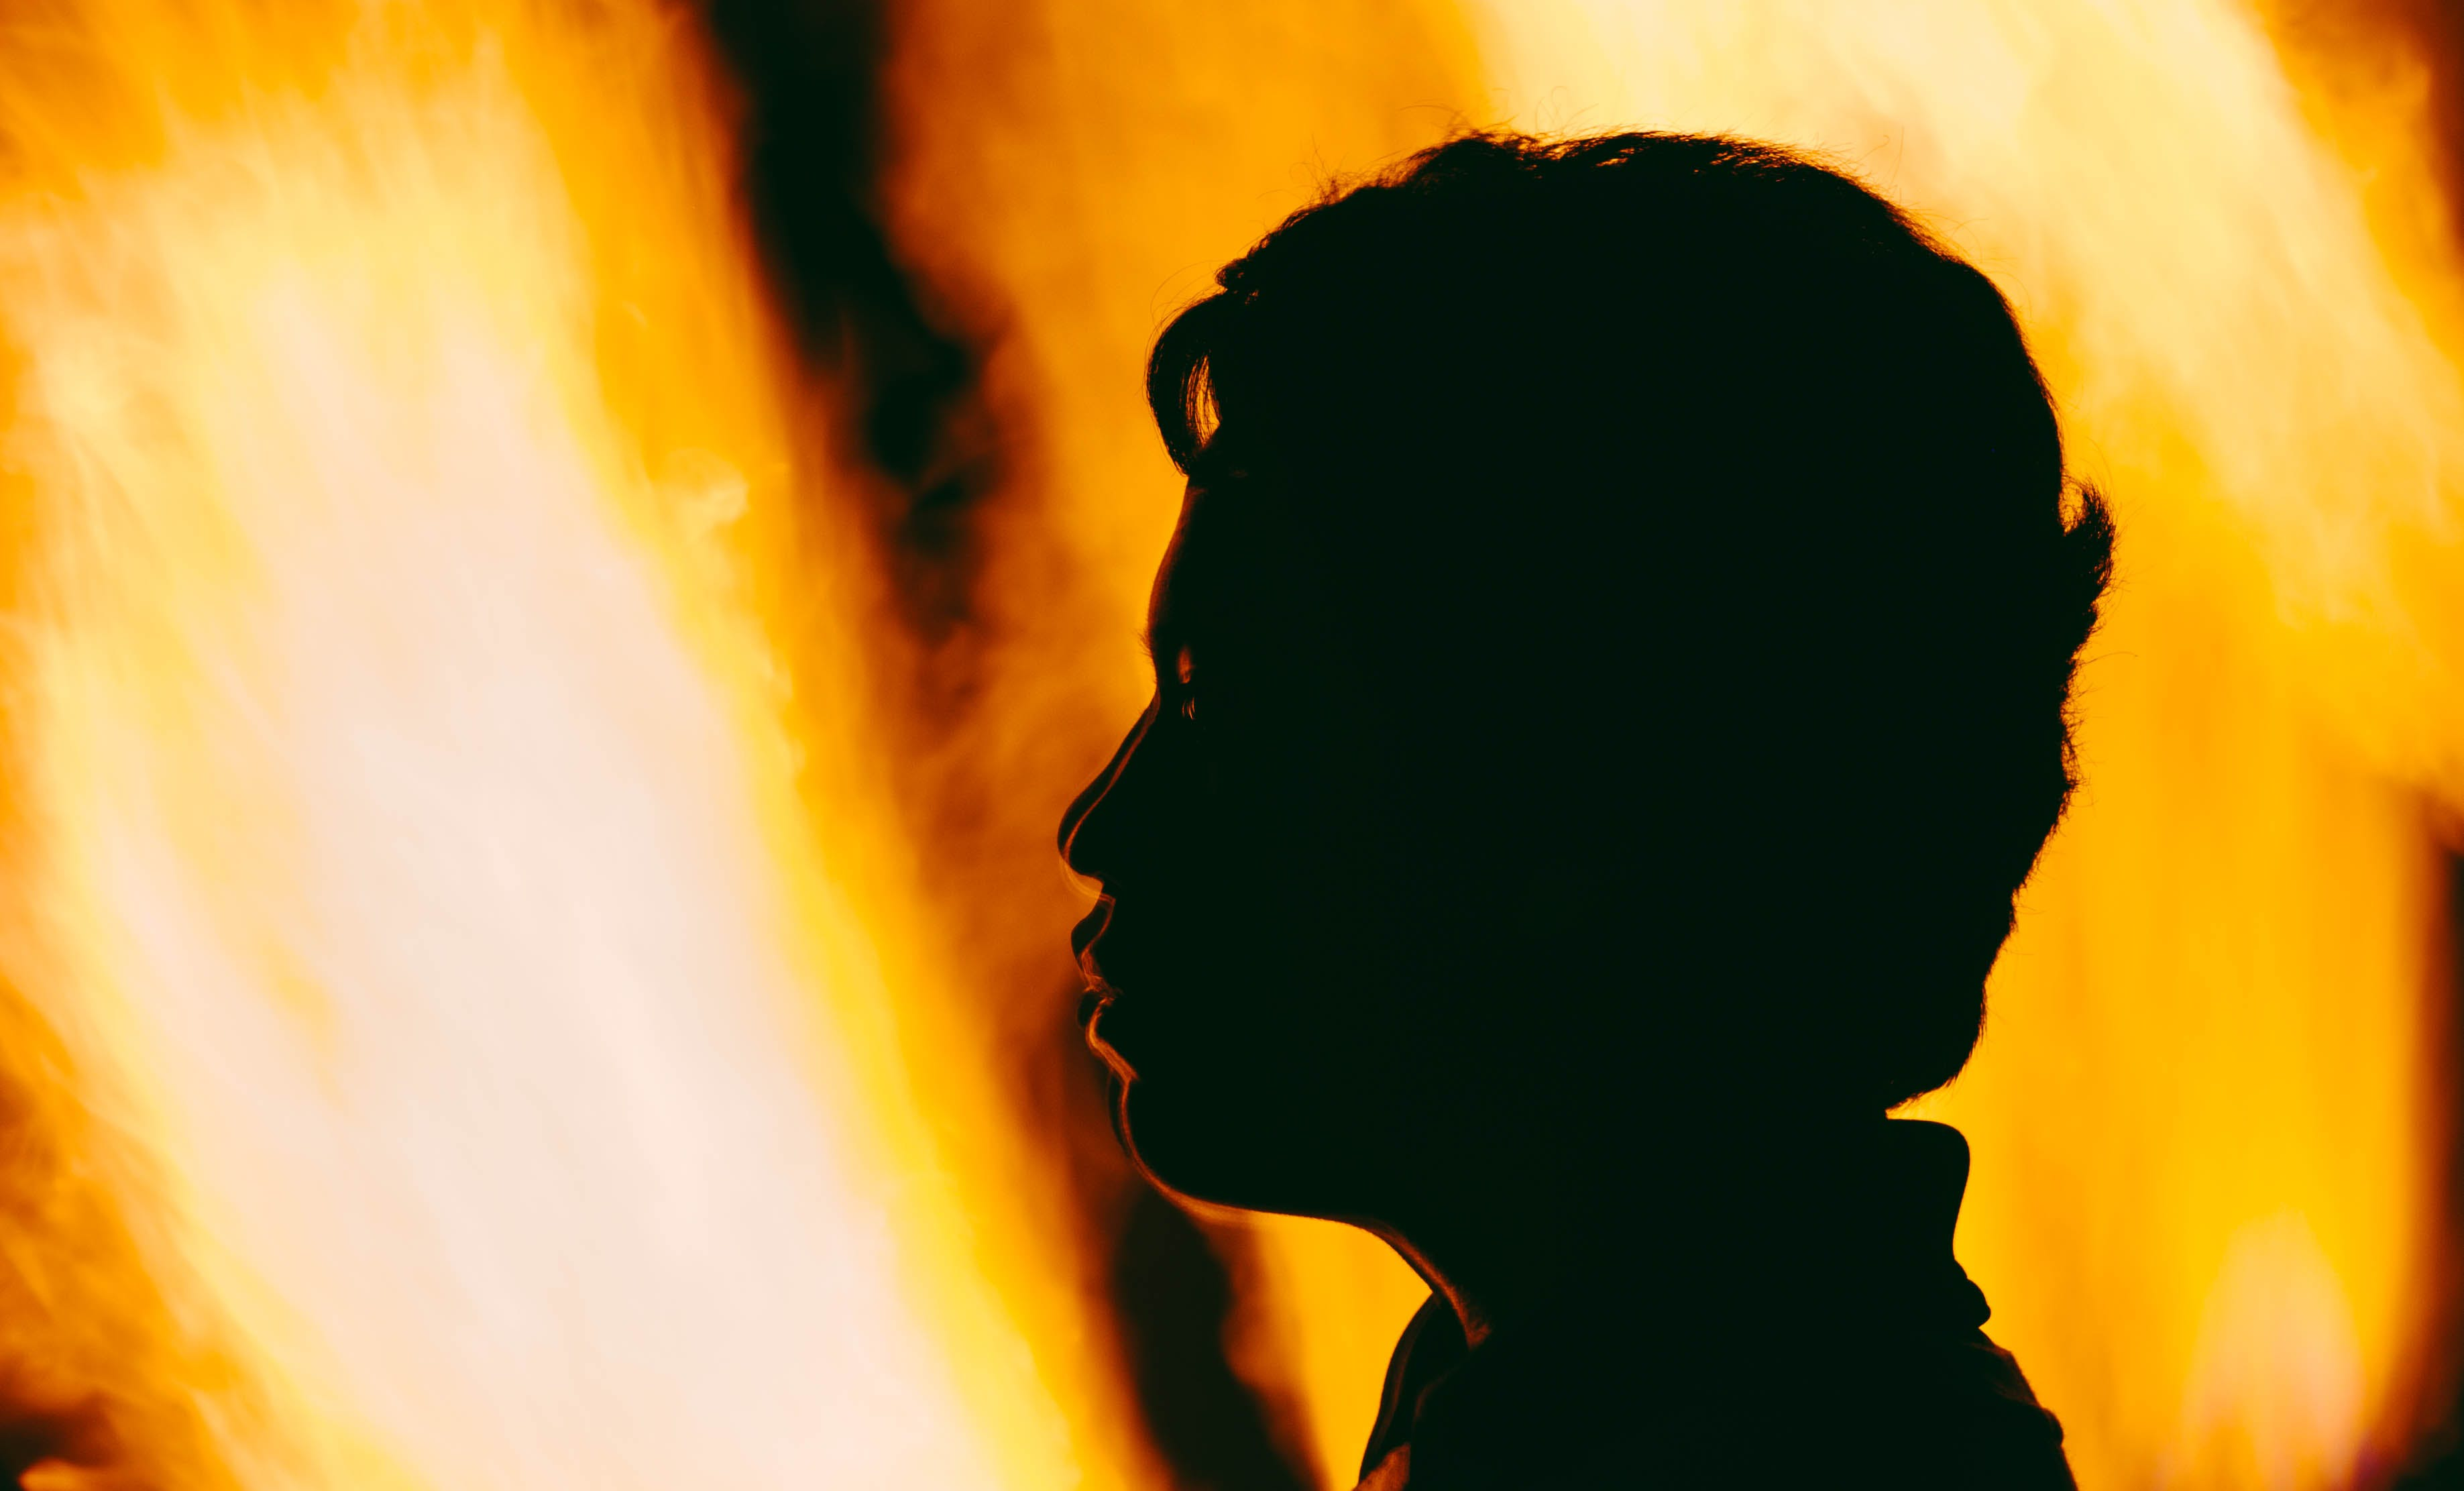 Silhouette With Fire Background